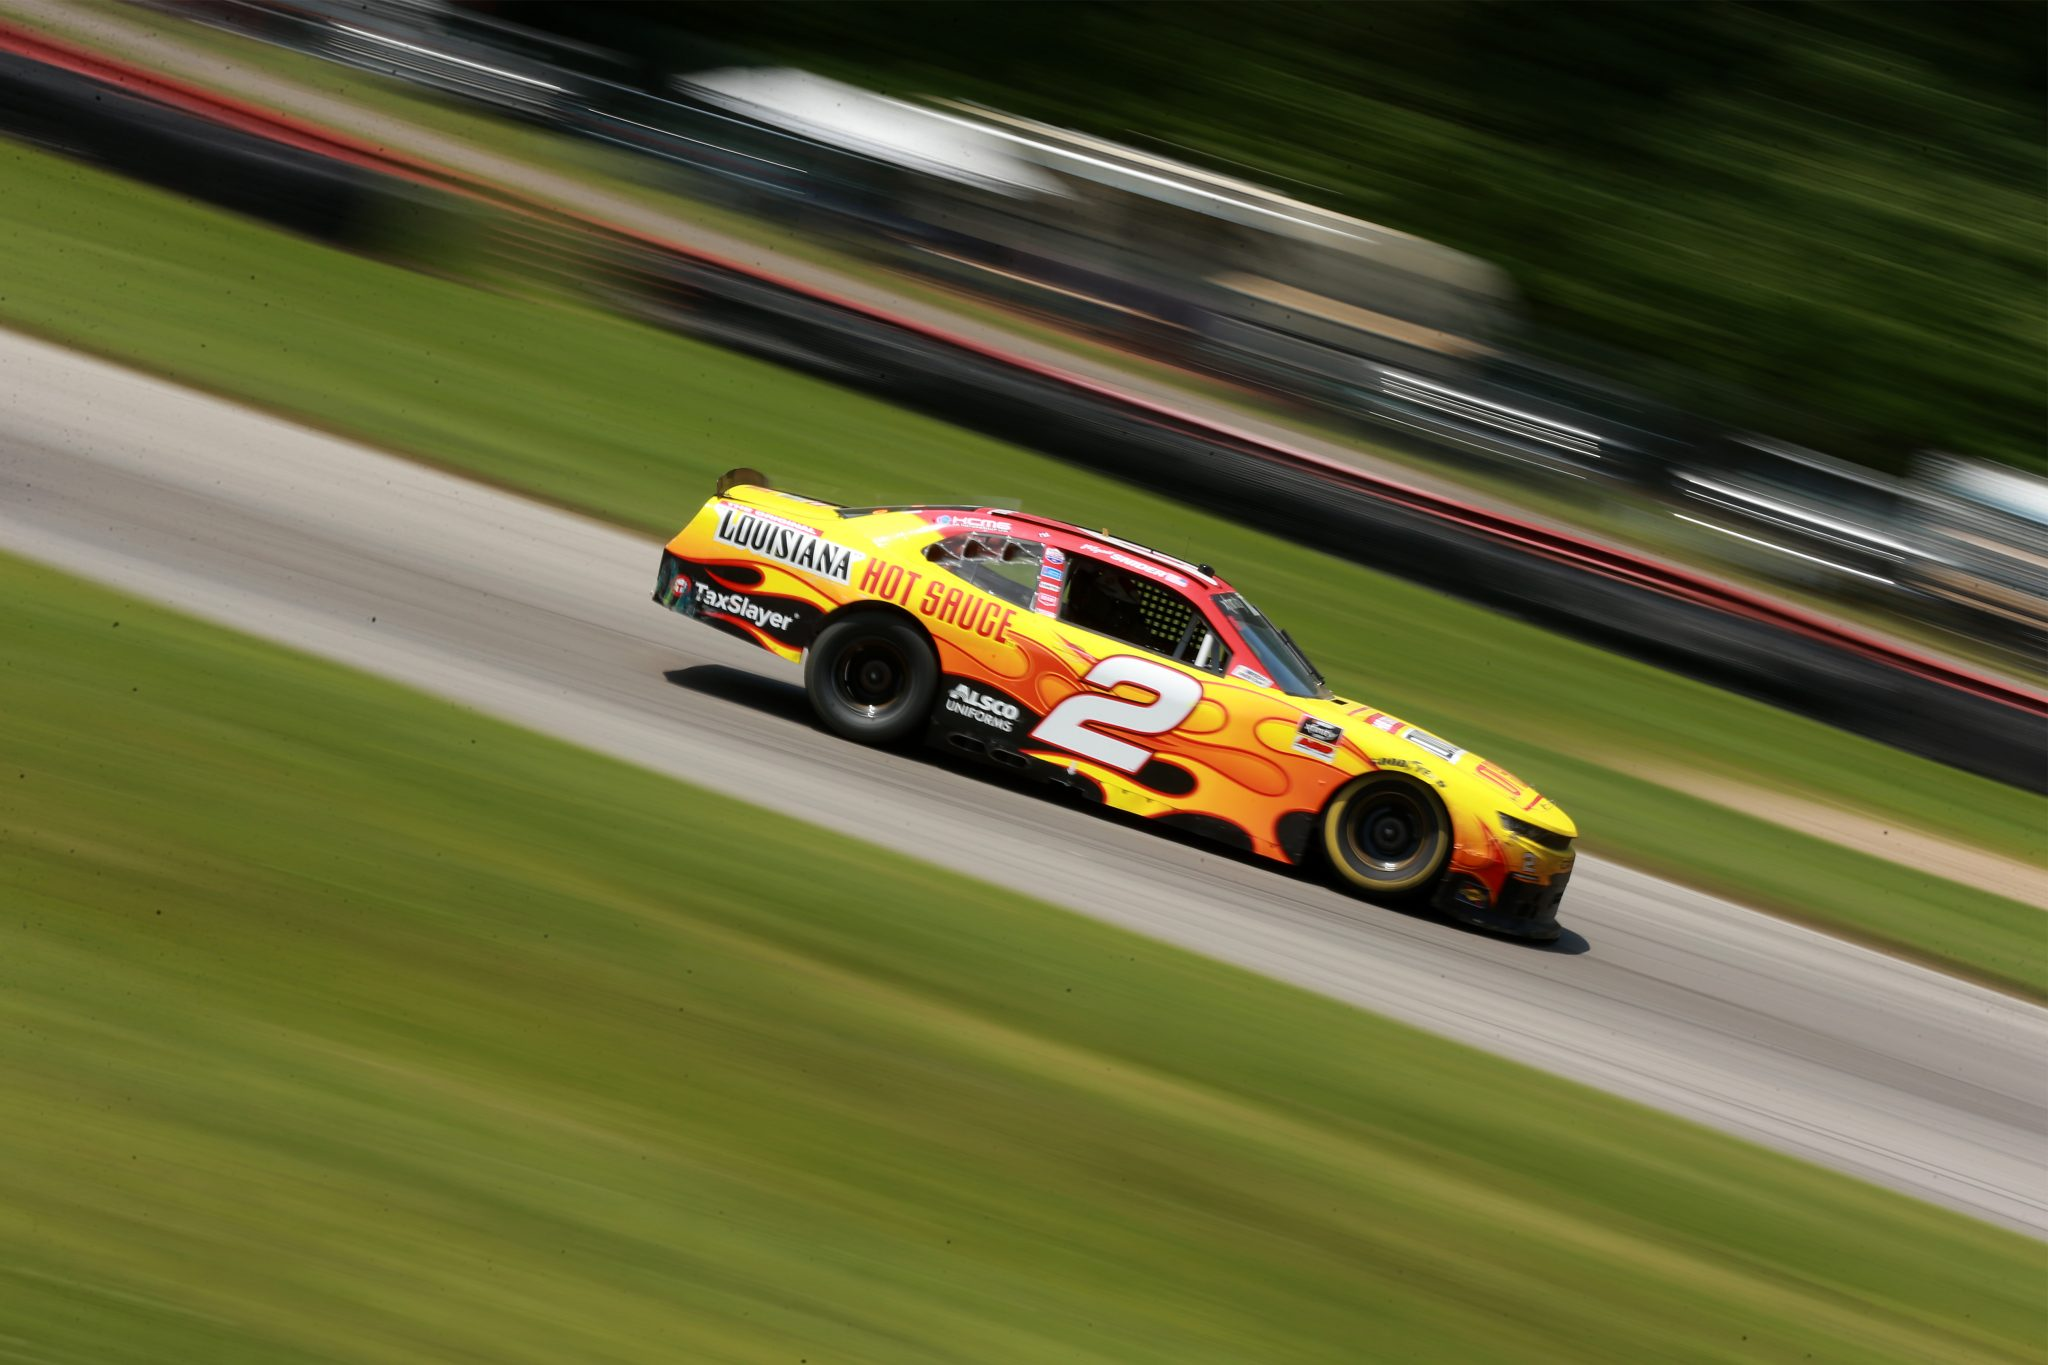 LEXINGTON, OHIO - JUNE 05: Myatt Snider, driver of the #2 Louisiana Hot Sauce Chevrolet, drives during the NASCAR Xfinity Series B&L Transport 170 at Mid-Ohio Sports Car Course on June 05, 2021 in Lexington, Ohio. (Photo by Sean Gardner/Getty Images) | Getty Images